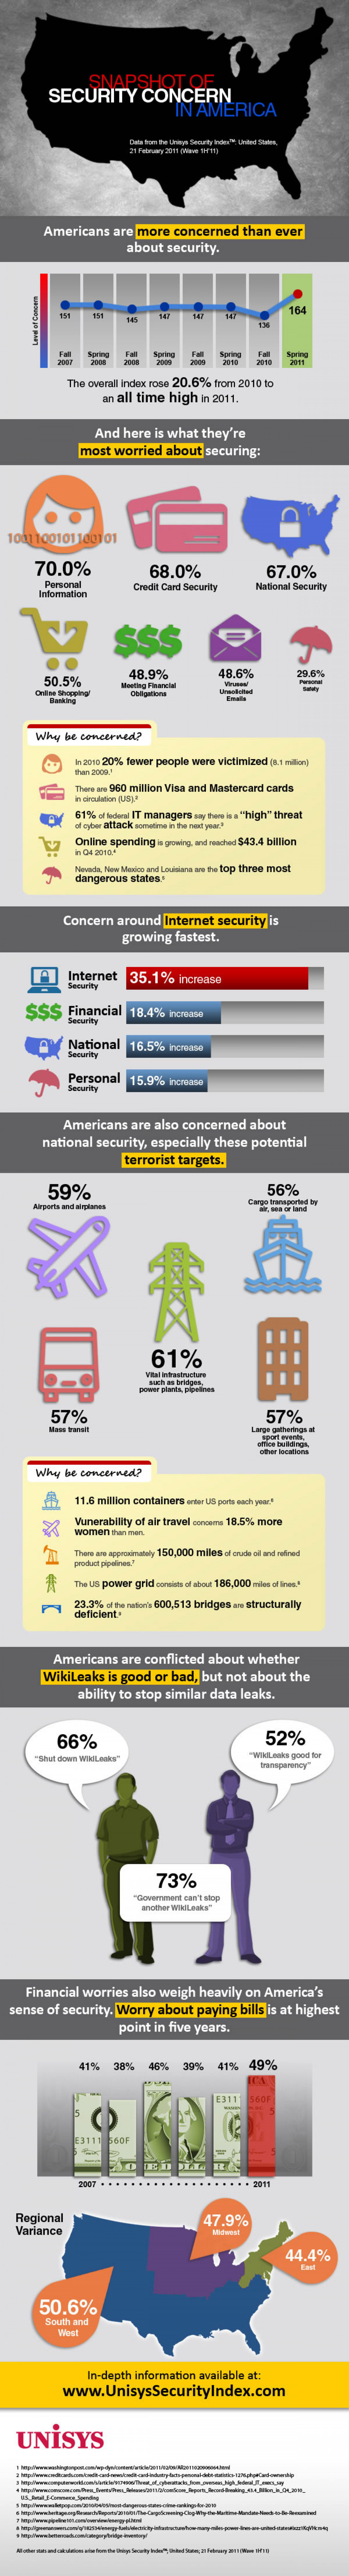 America's Top Security Concerns Infographic